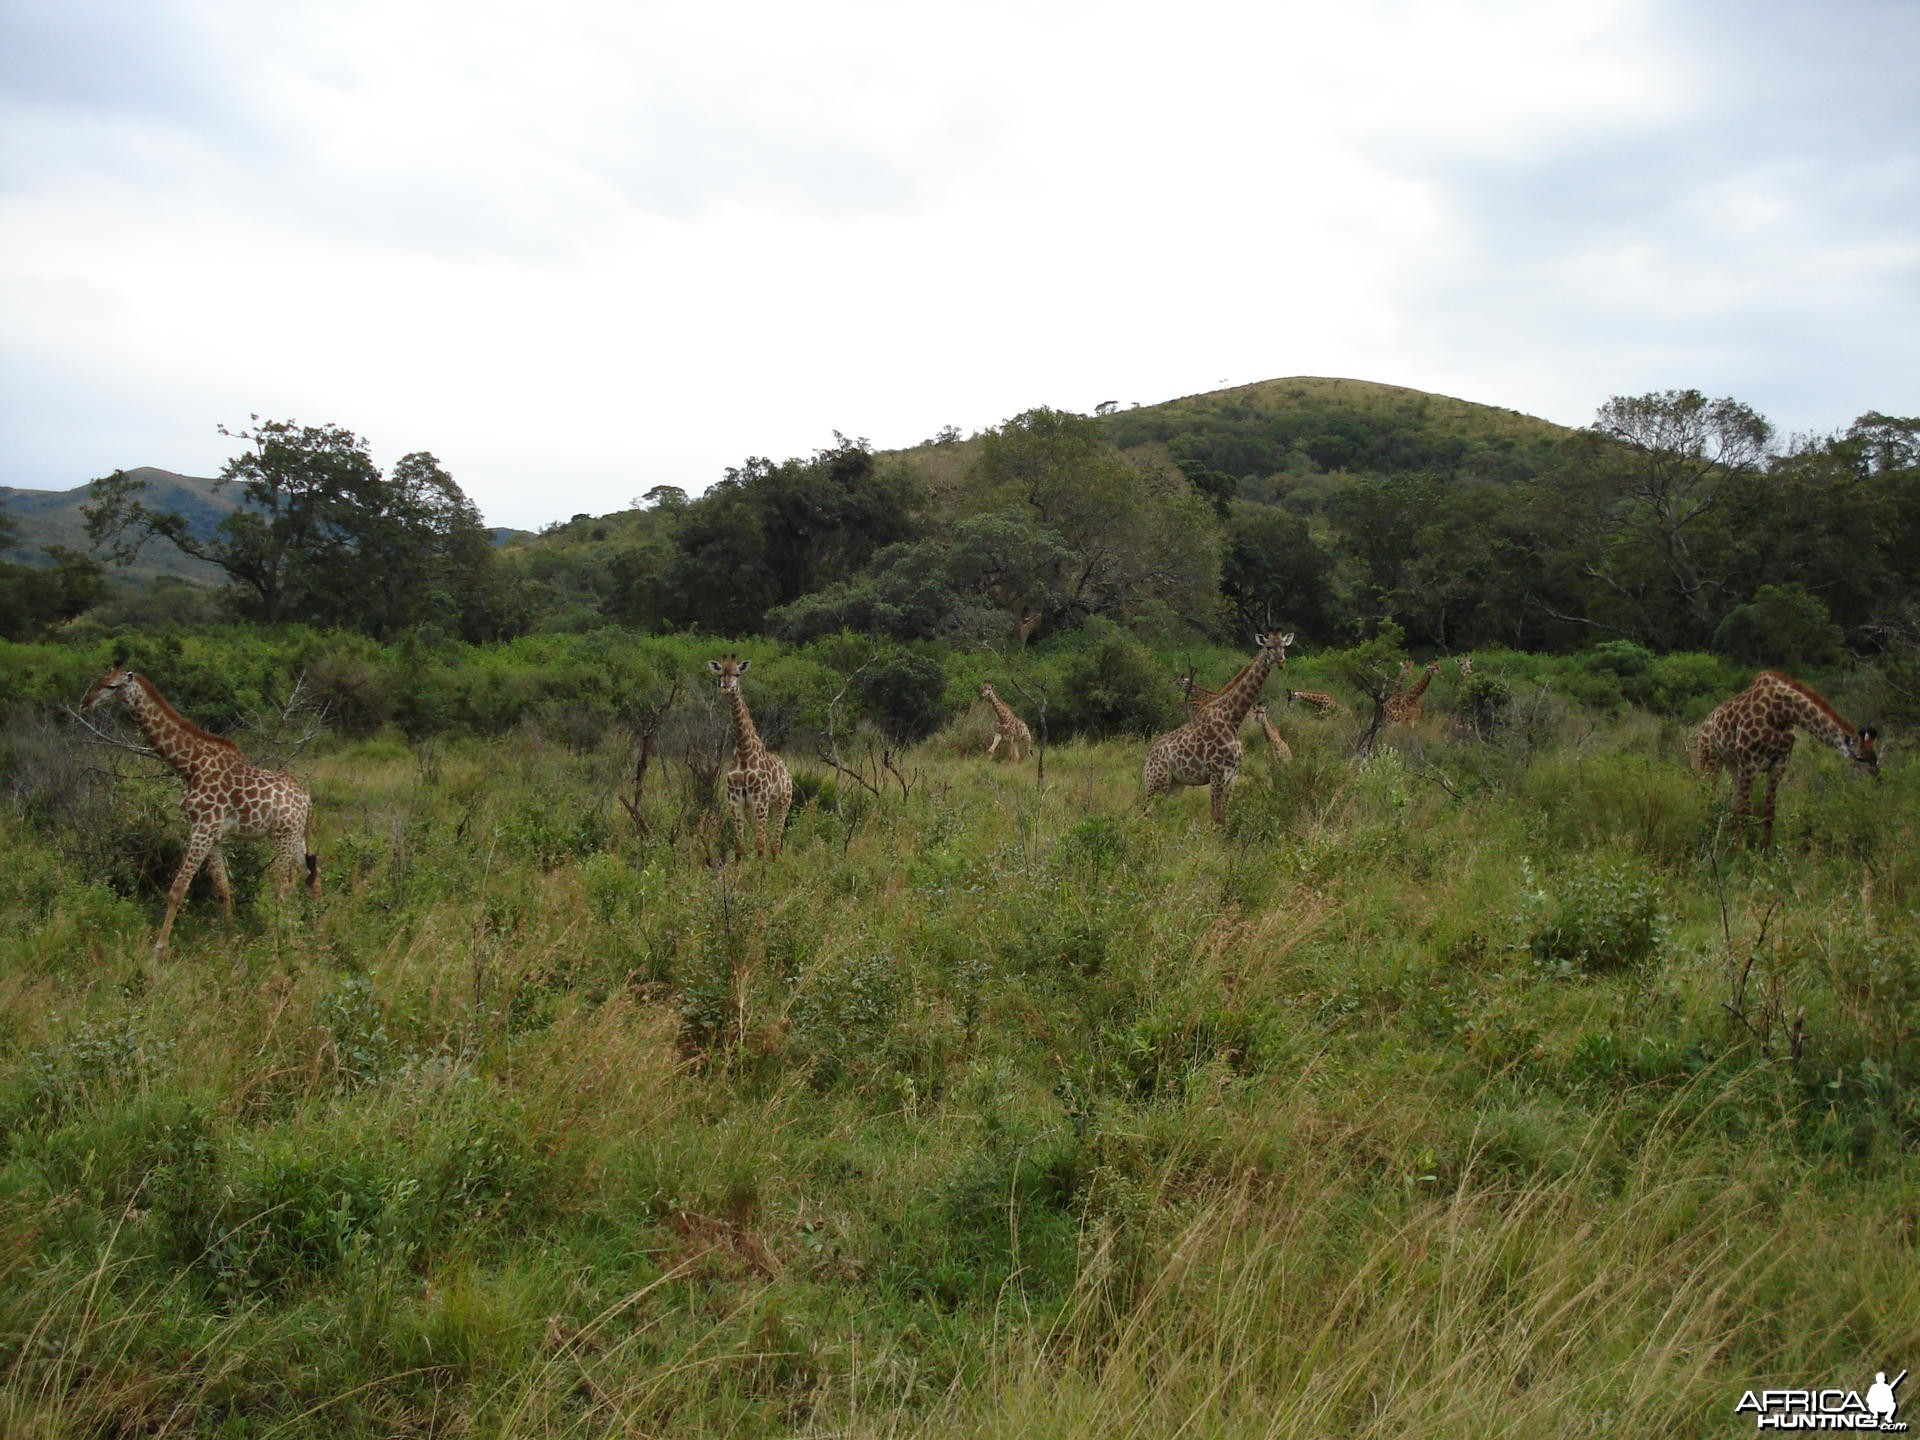 South-East of Pongola, KZN, South Africa